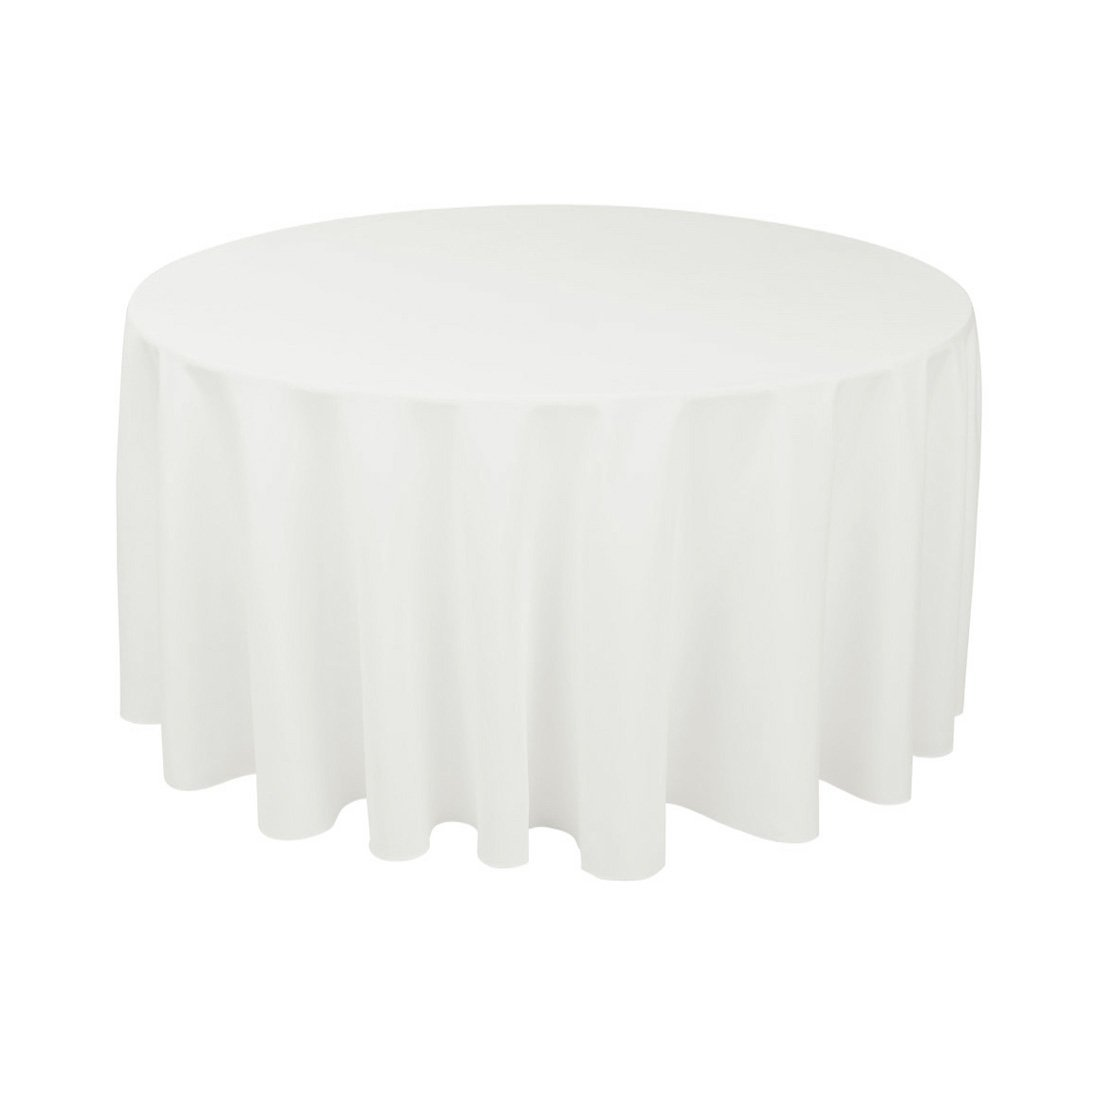 Wedding goods for sale polyester 120 round tablecloth for 120 round table cloths